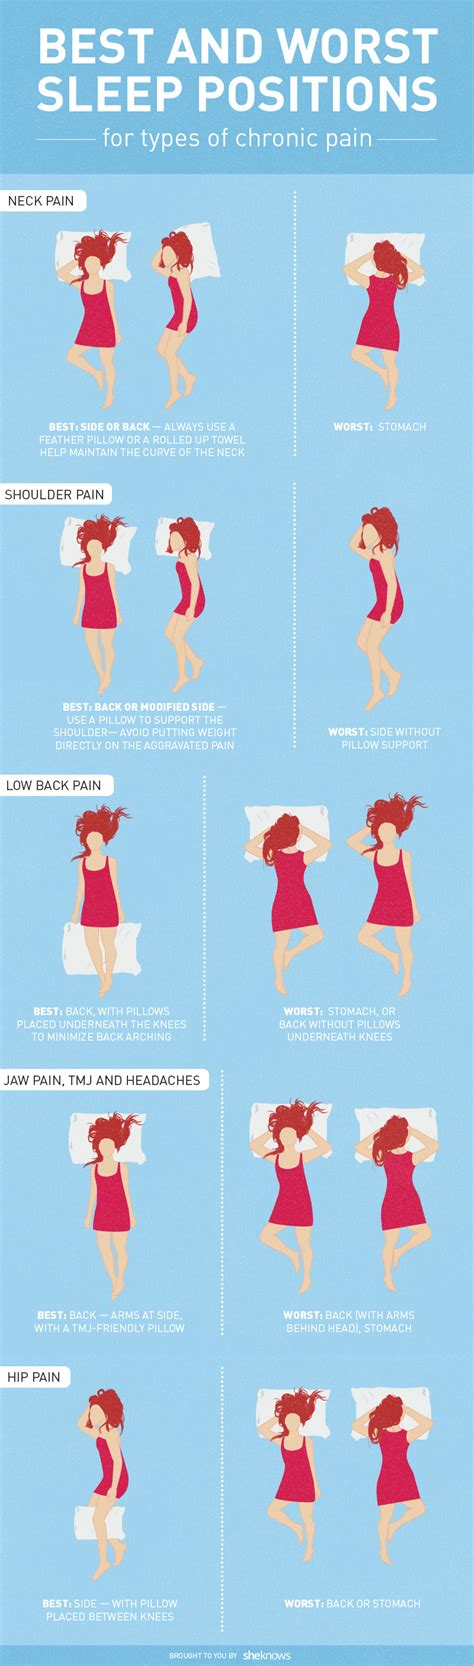 post back surgery sleep positions picture 1